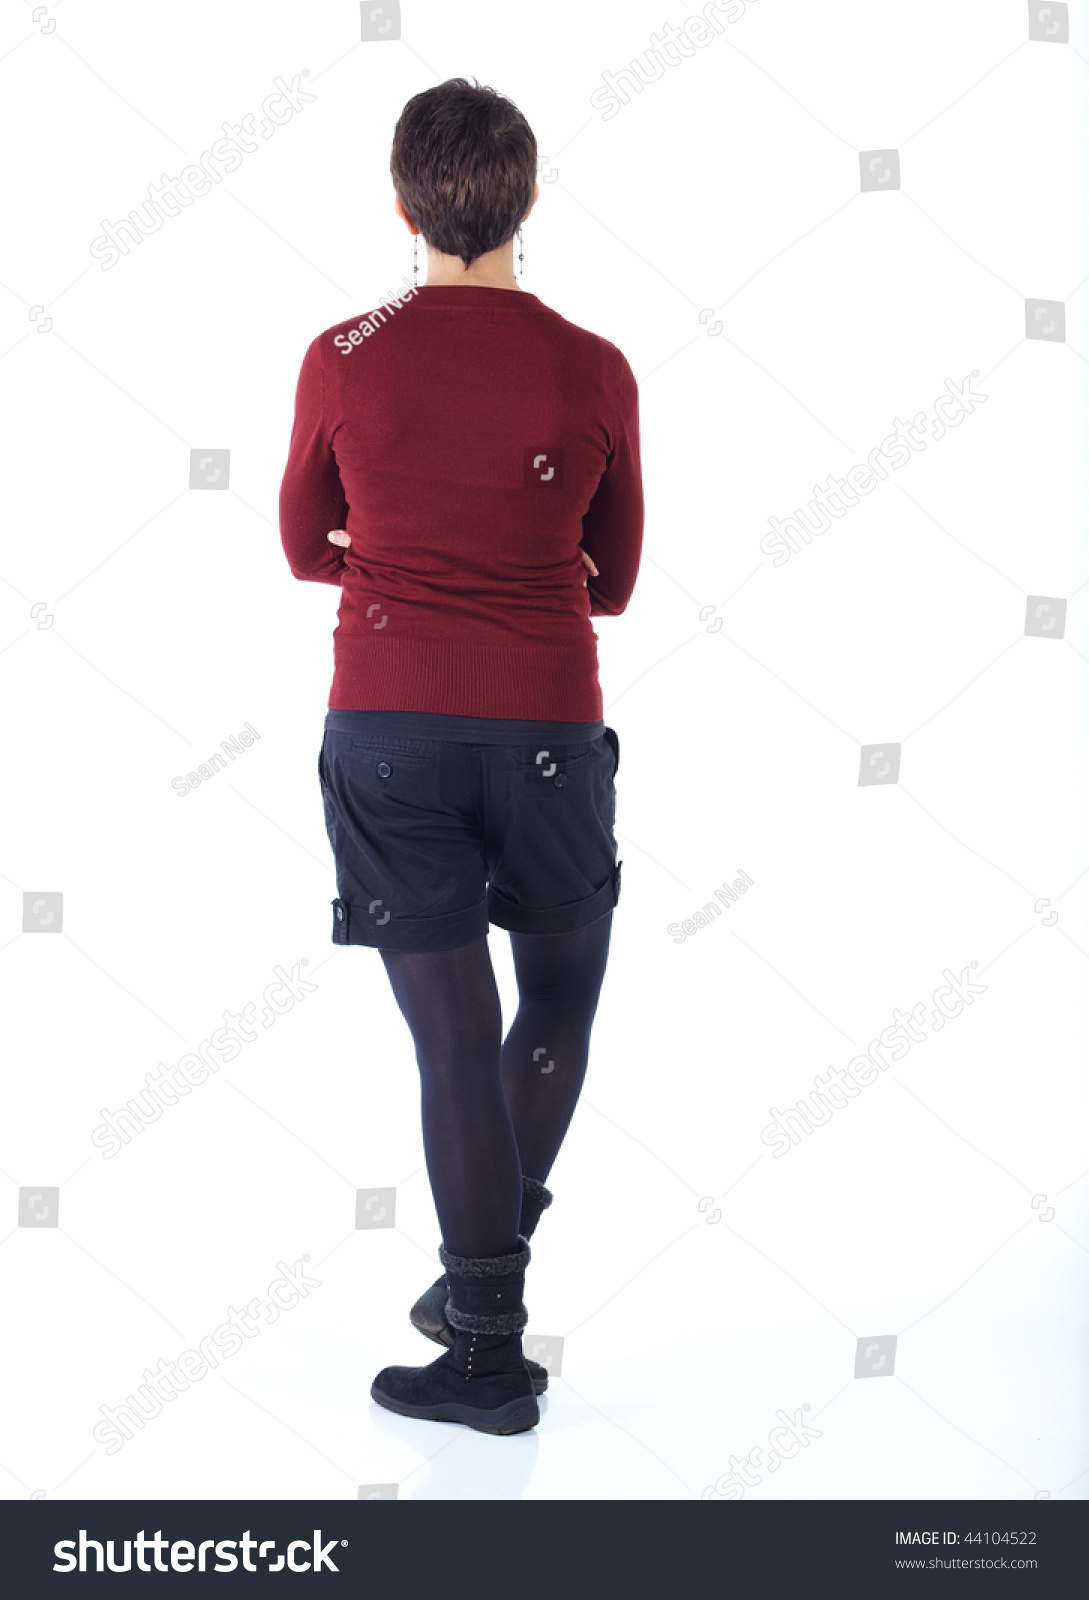 Cute Young Adult Caucasian Woman Short Royalty Free Stock Image